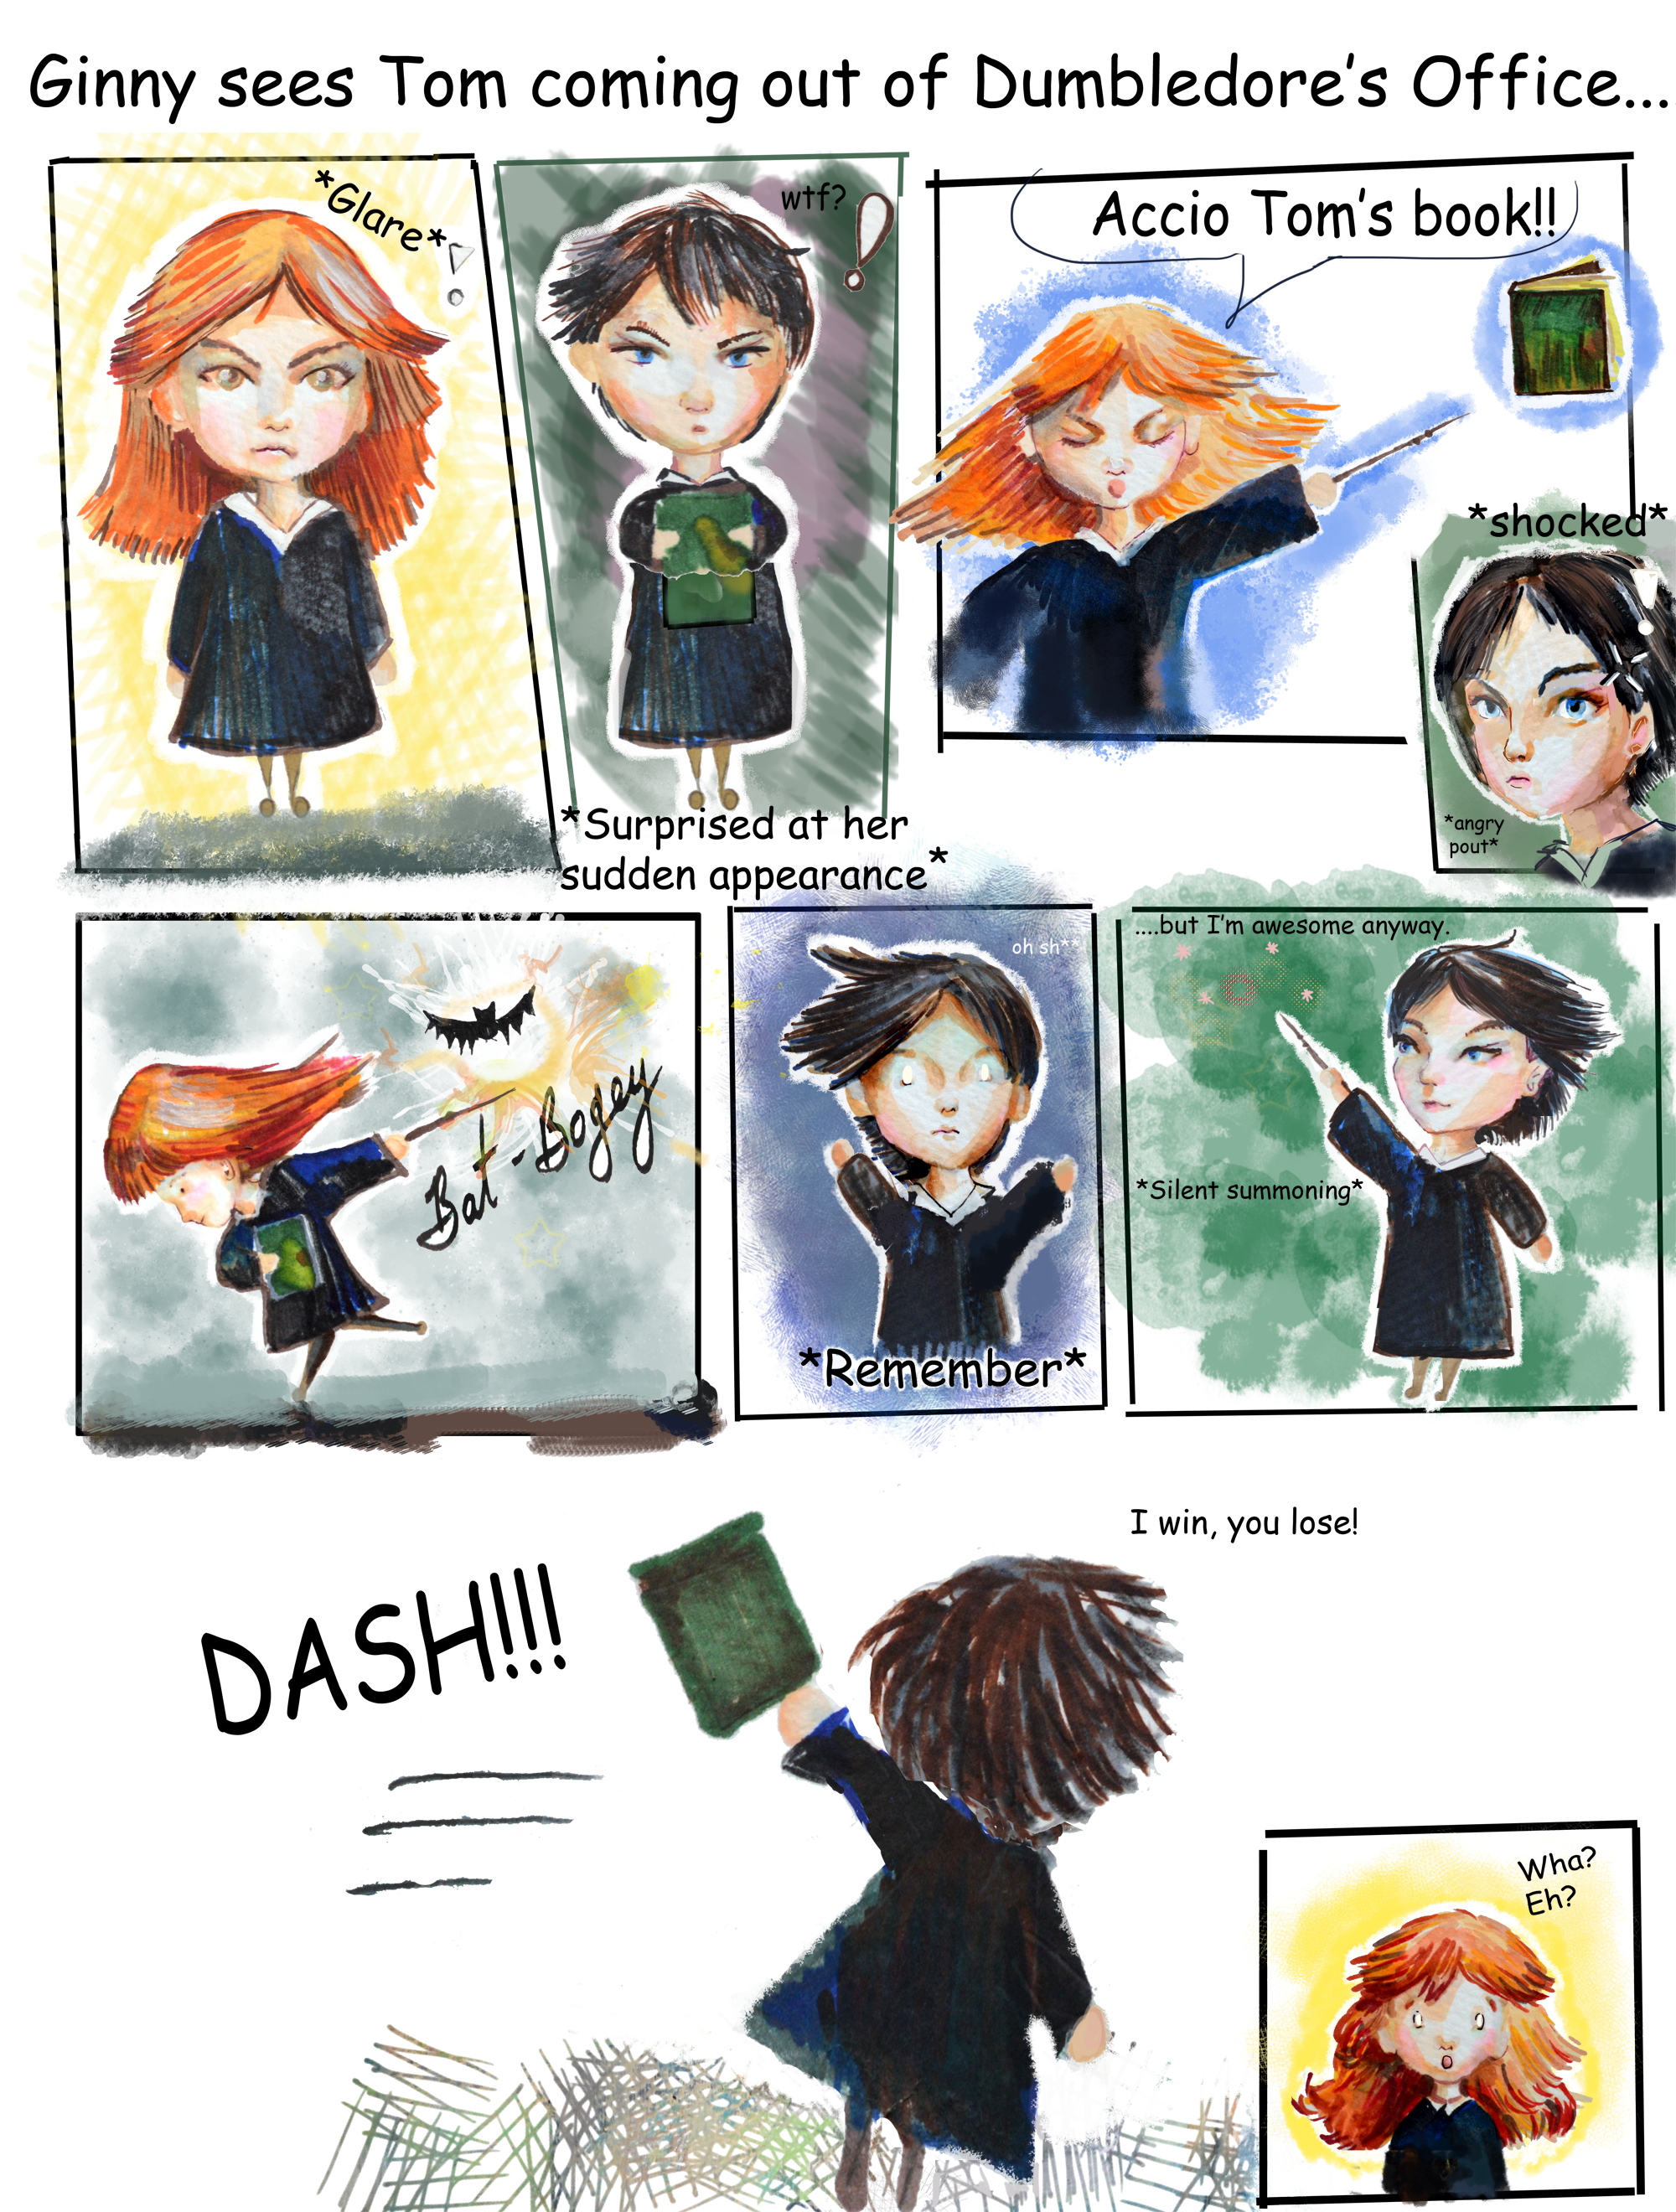 Ginny vs  Tom Riddle: And I hold my breath (comic) by